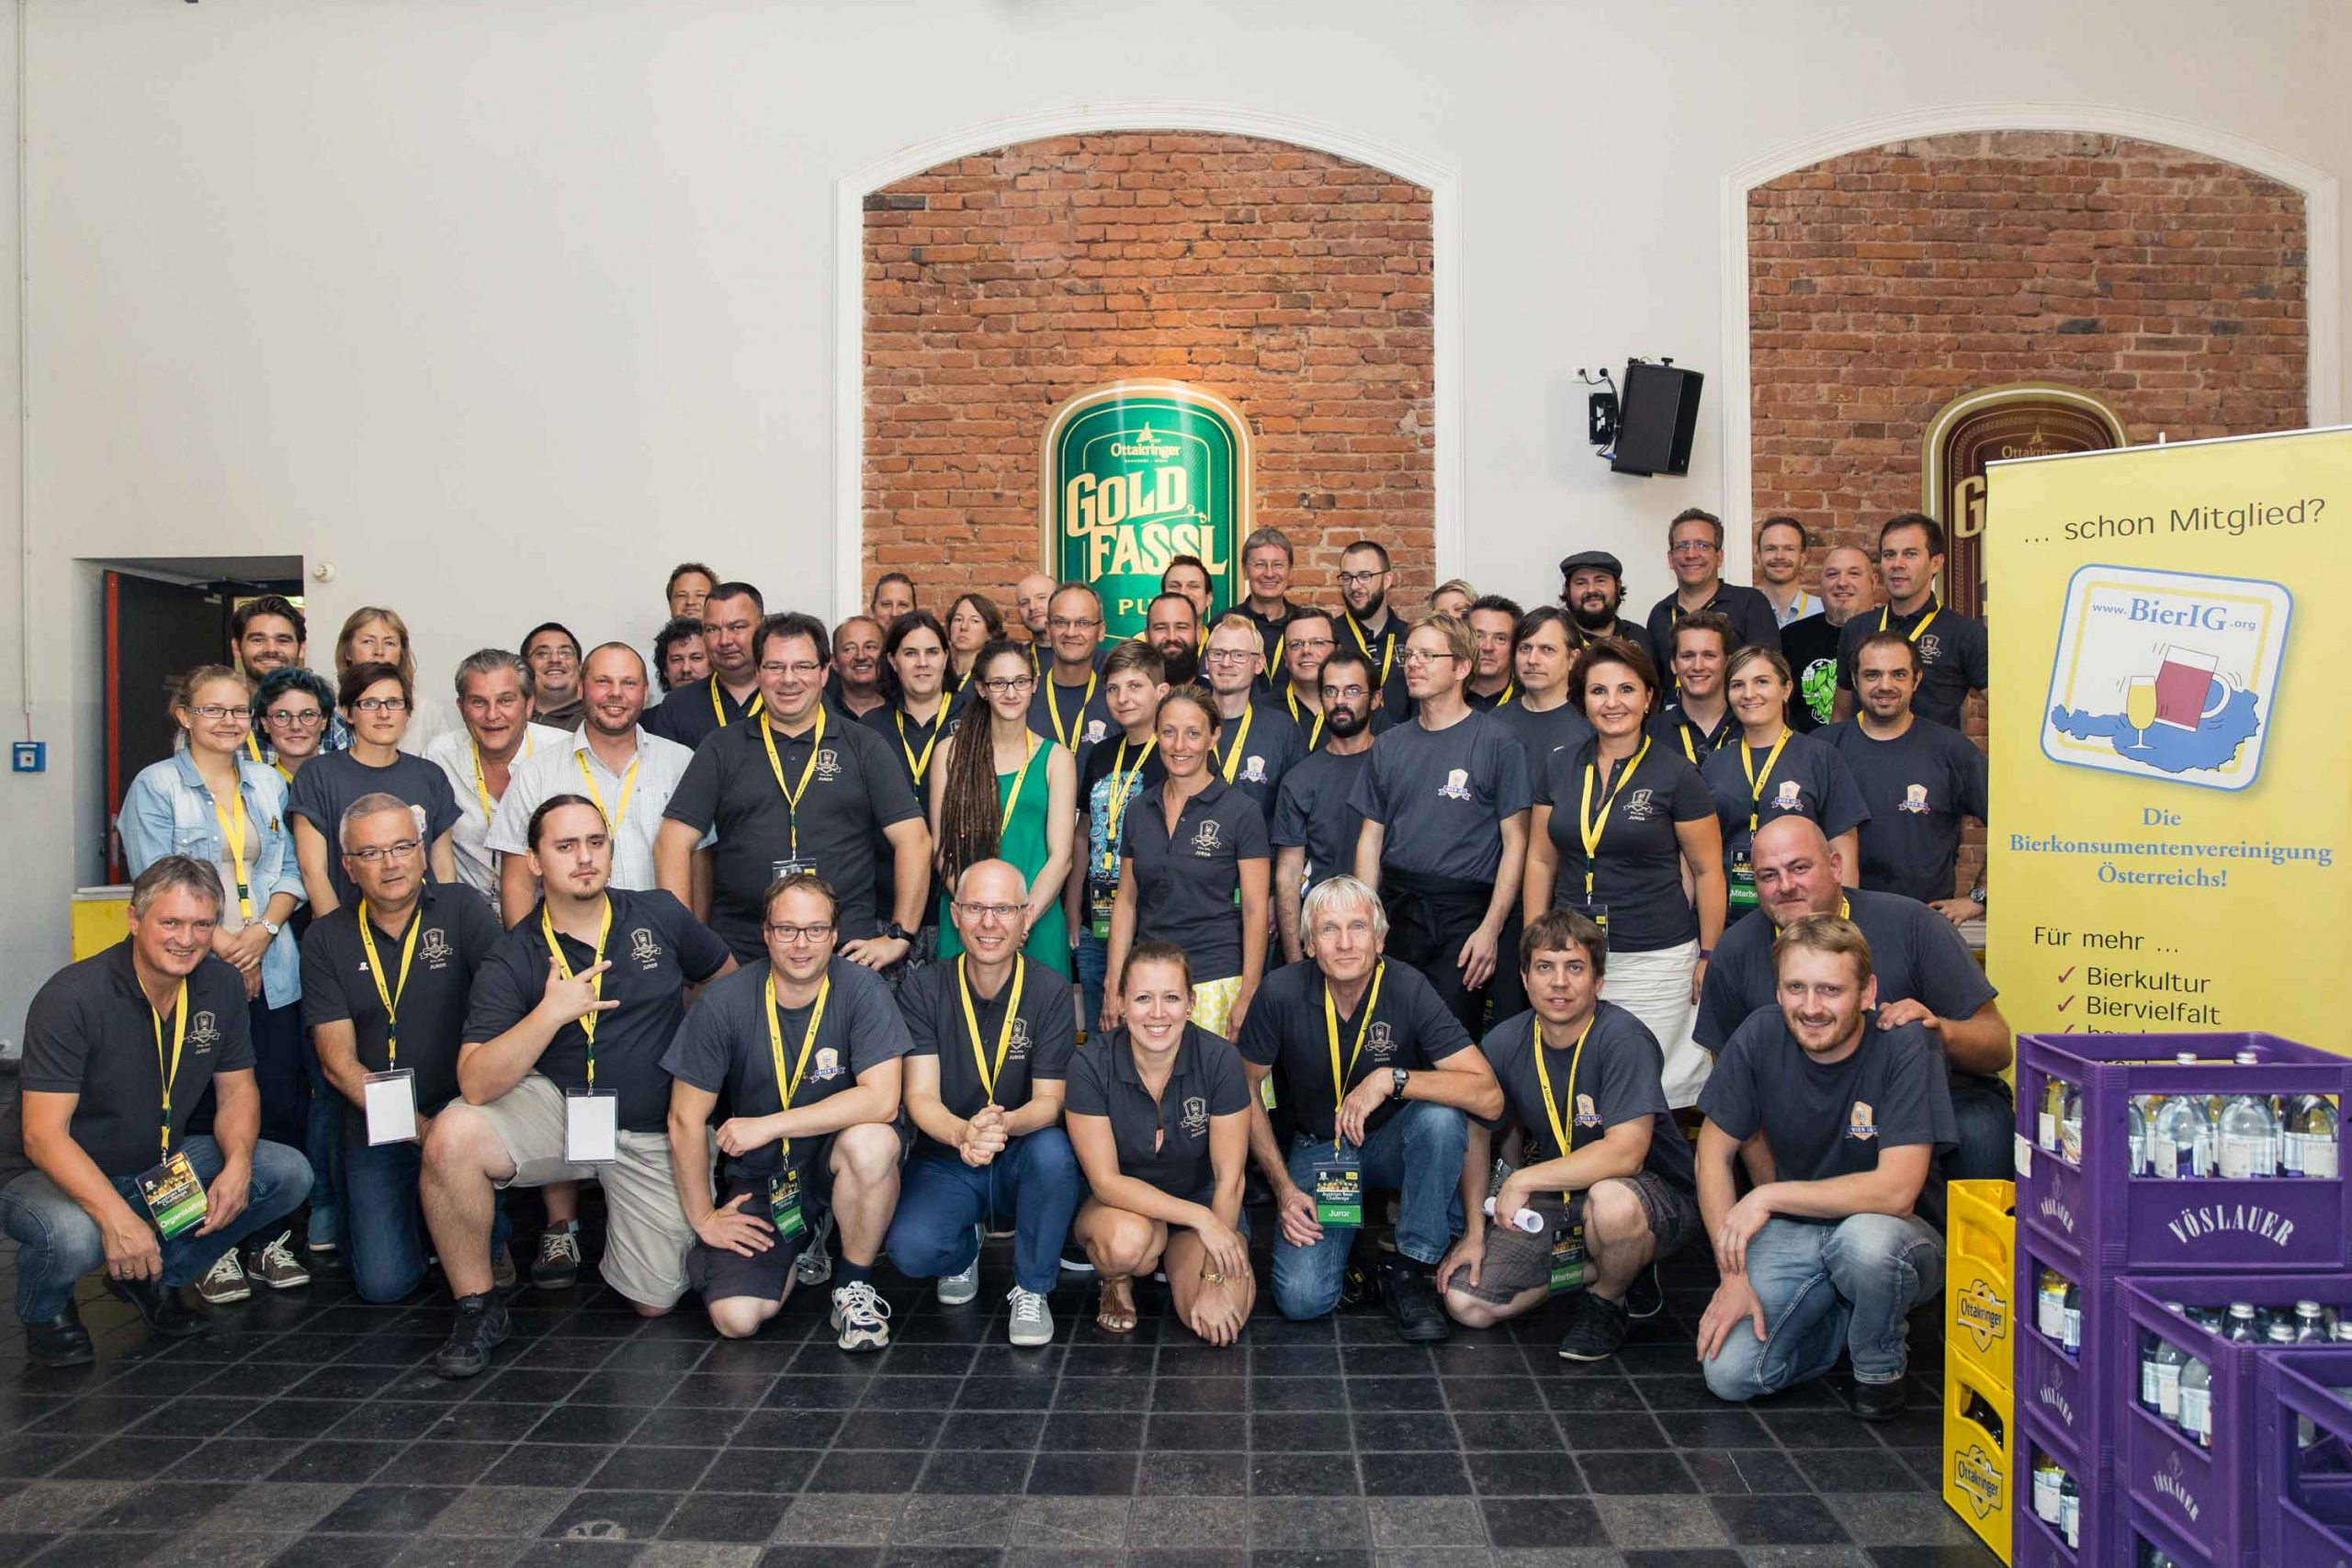 """And the winner is.."" – BierIG Austrian Beer Challenge"